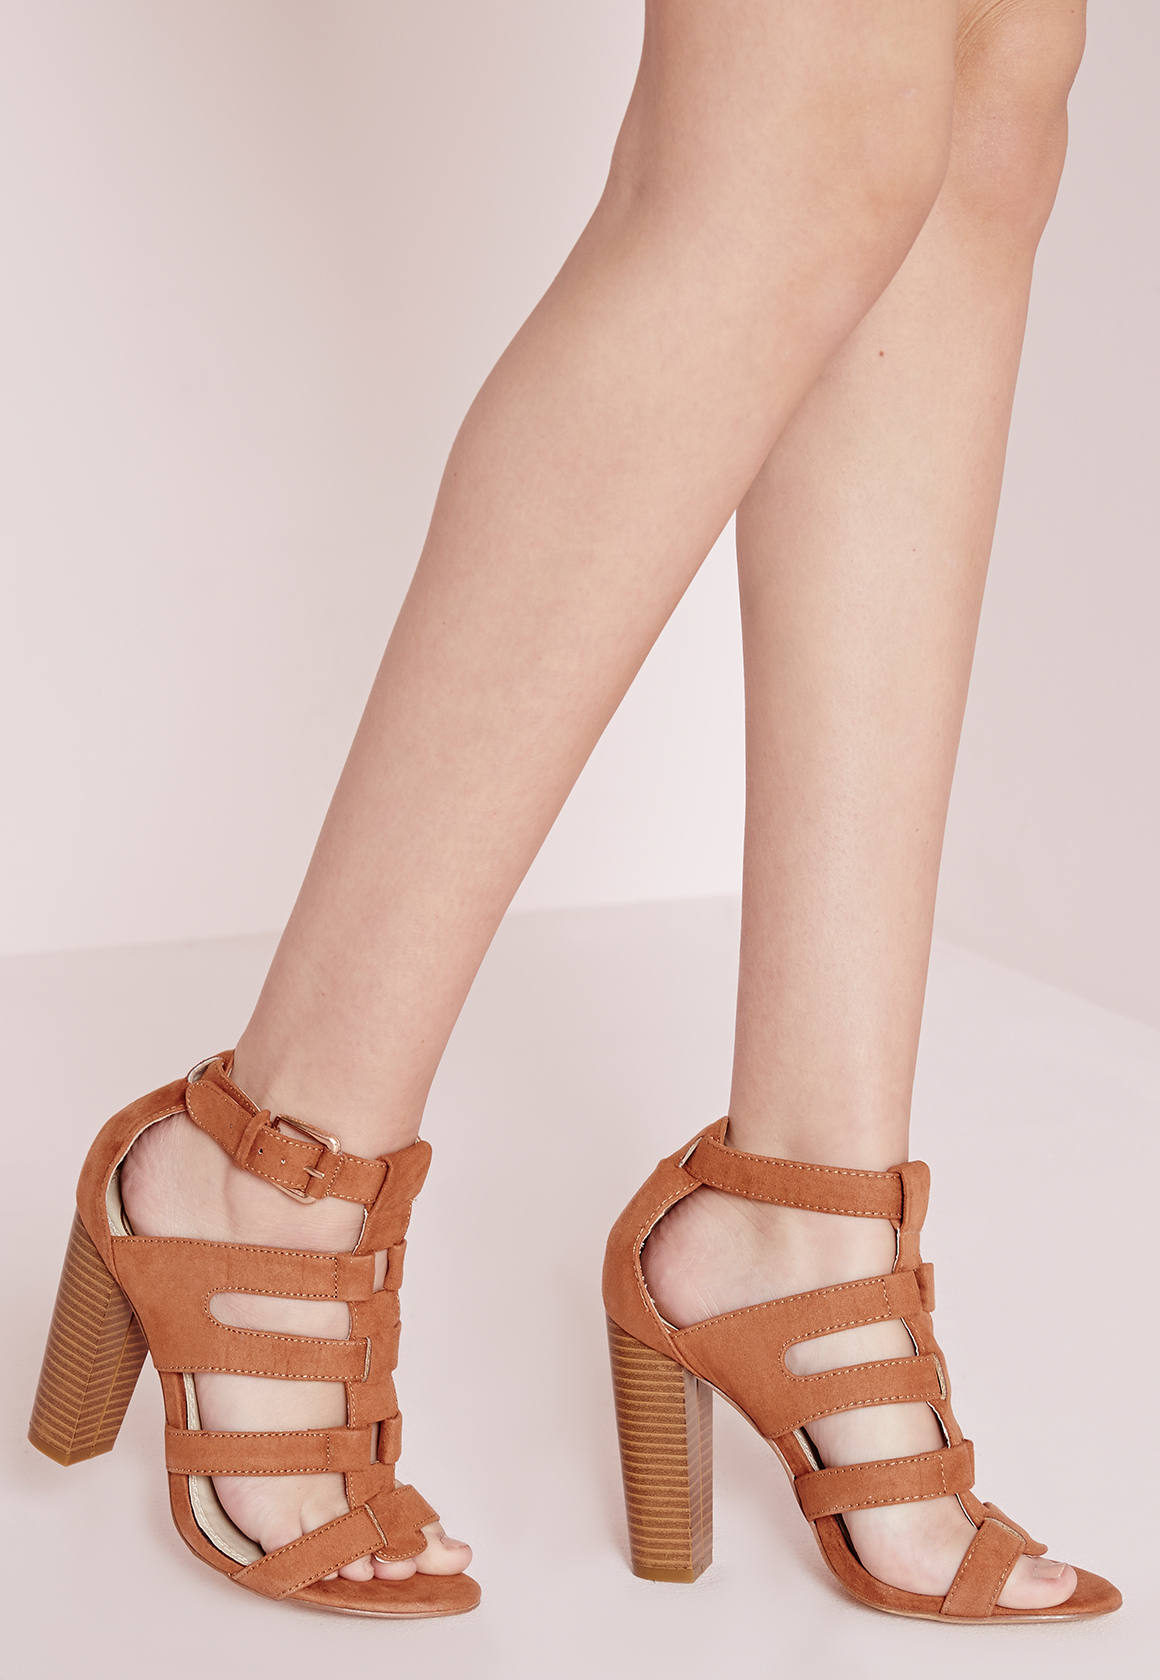 Lyst Missguided Gladiator Heeled Sandals Tan Faux Suede